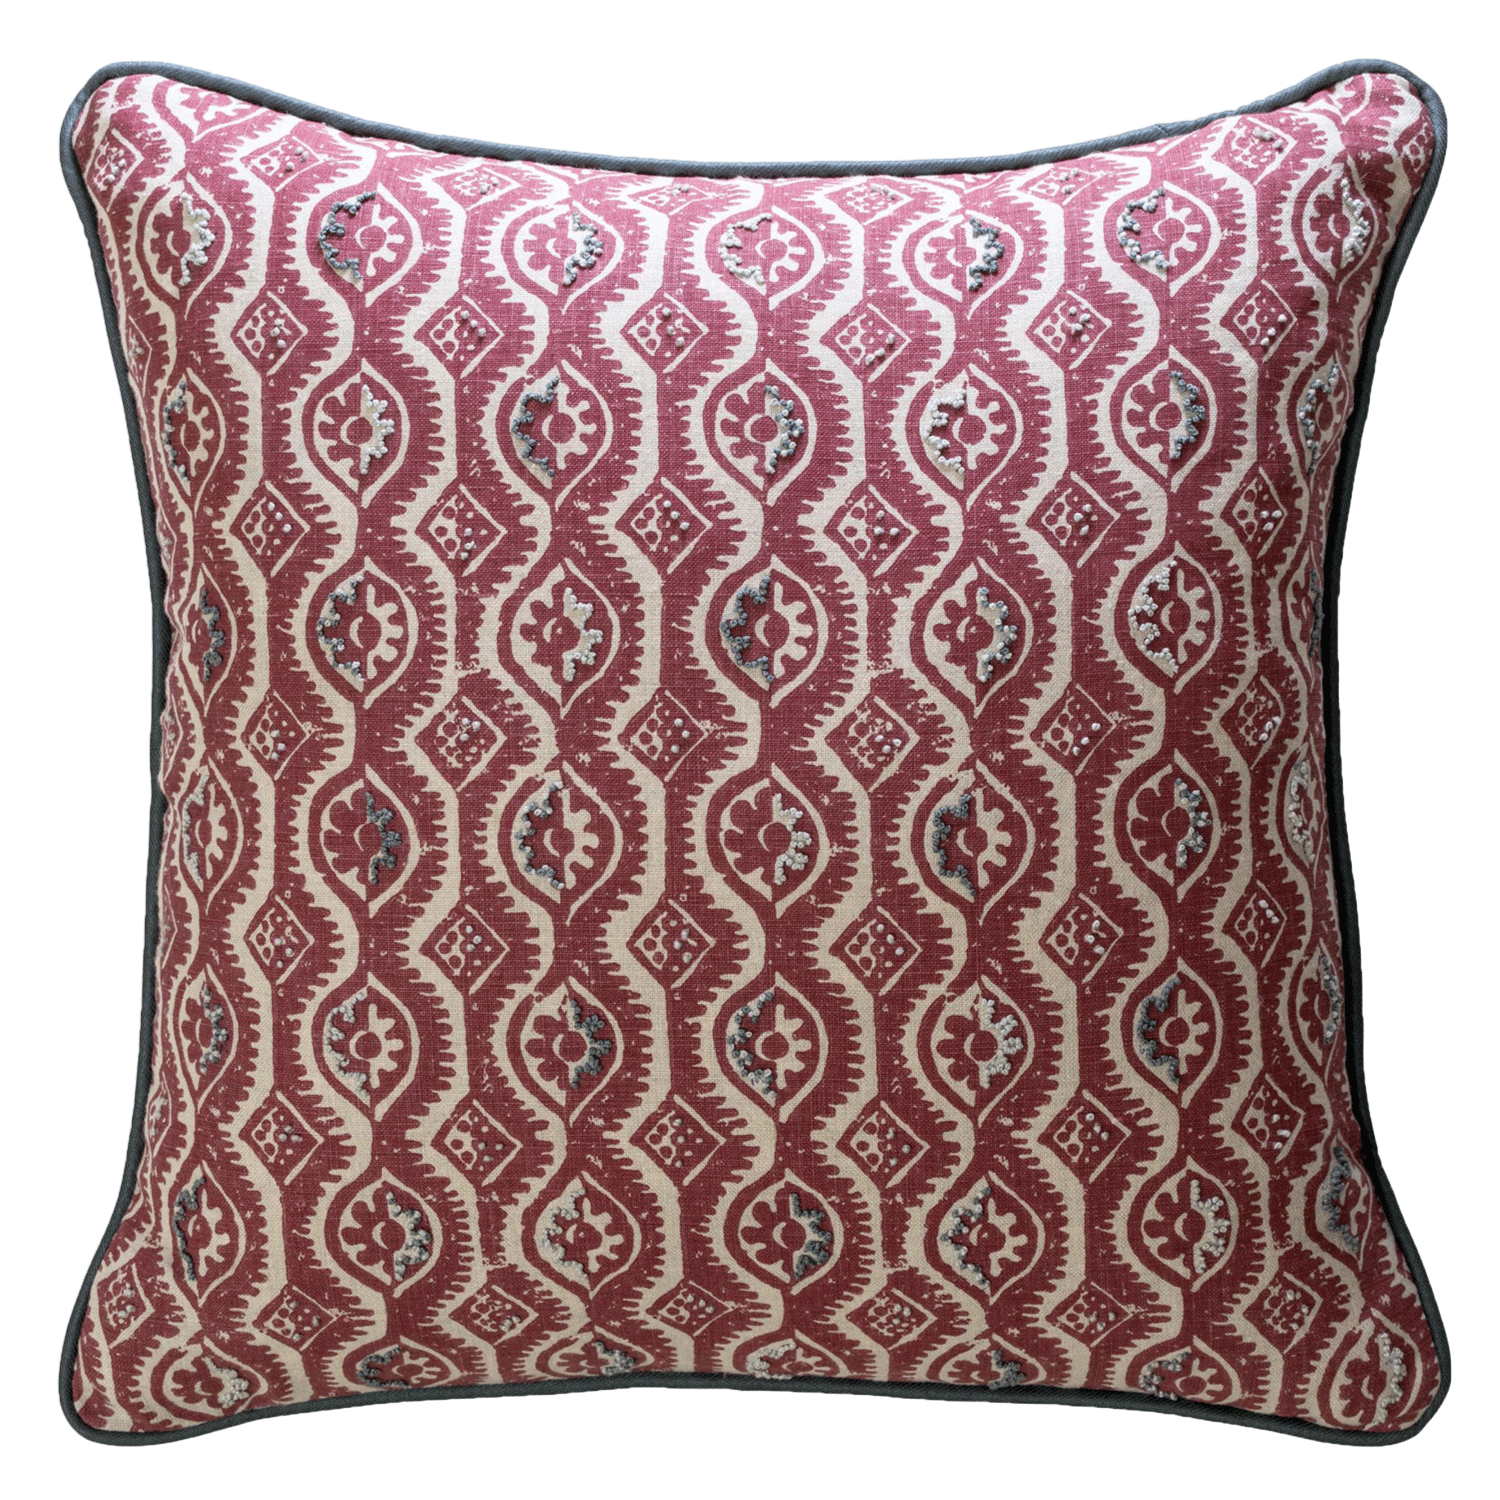 <p>BLITHFIELD PEGGY ANGUS SMALL DAMASK  - Red cushion embroidered with French knots</p>